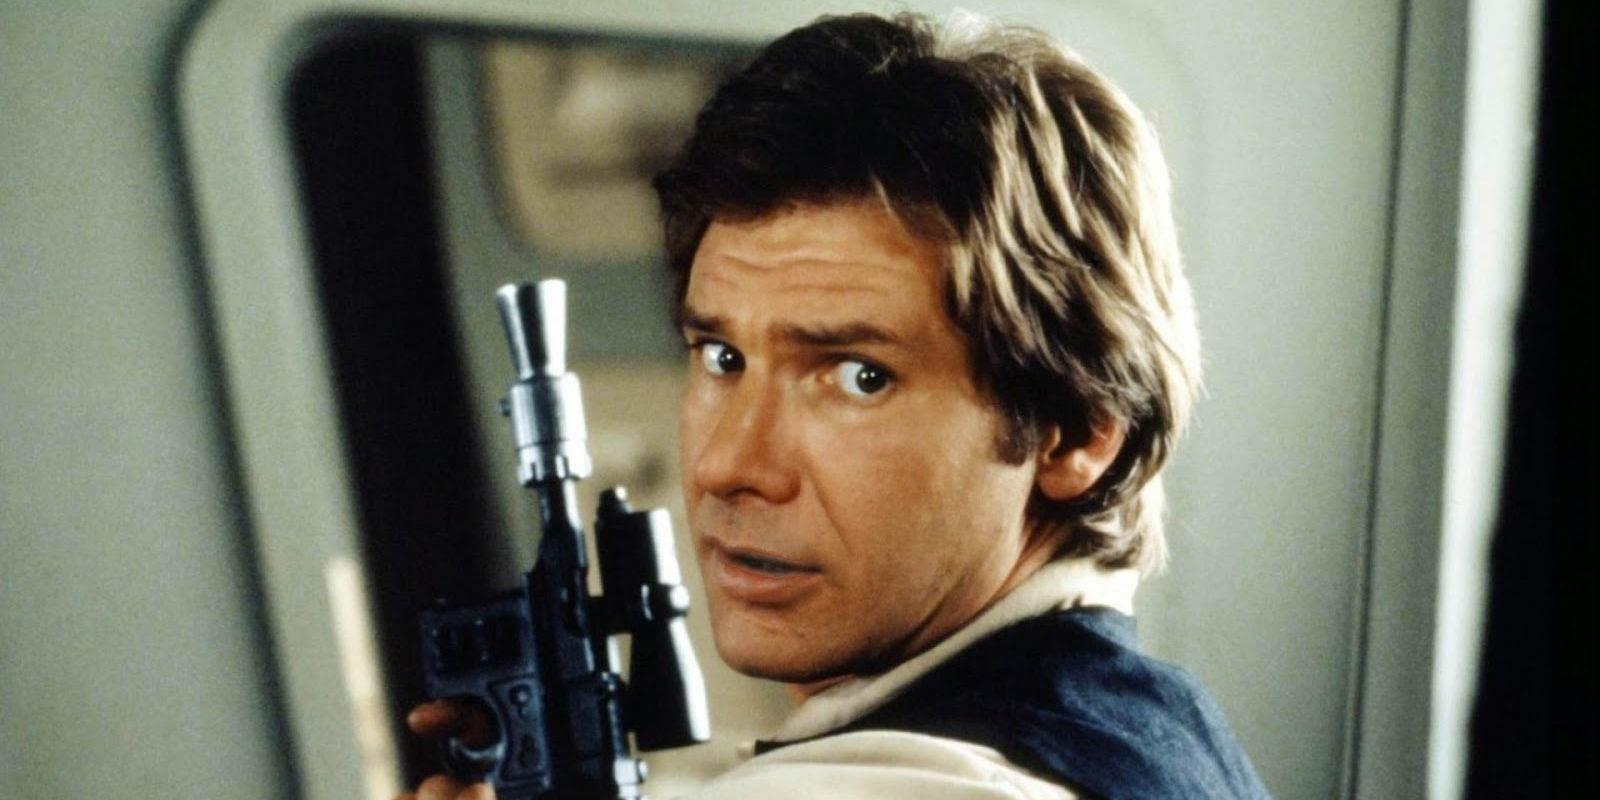 Star Wars came very close to casting a black Han Solo